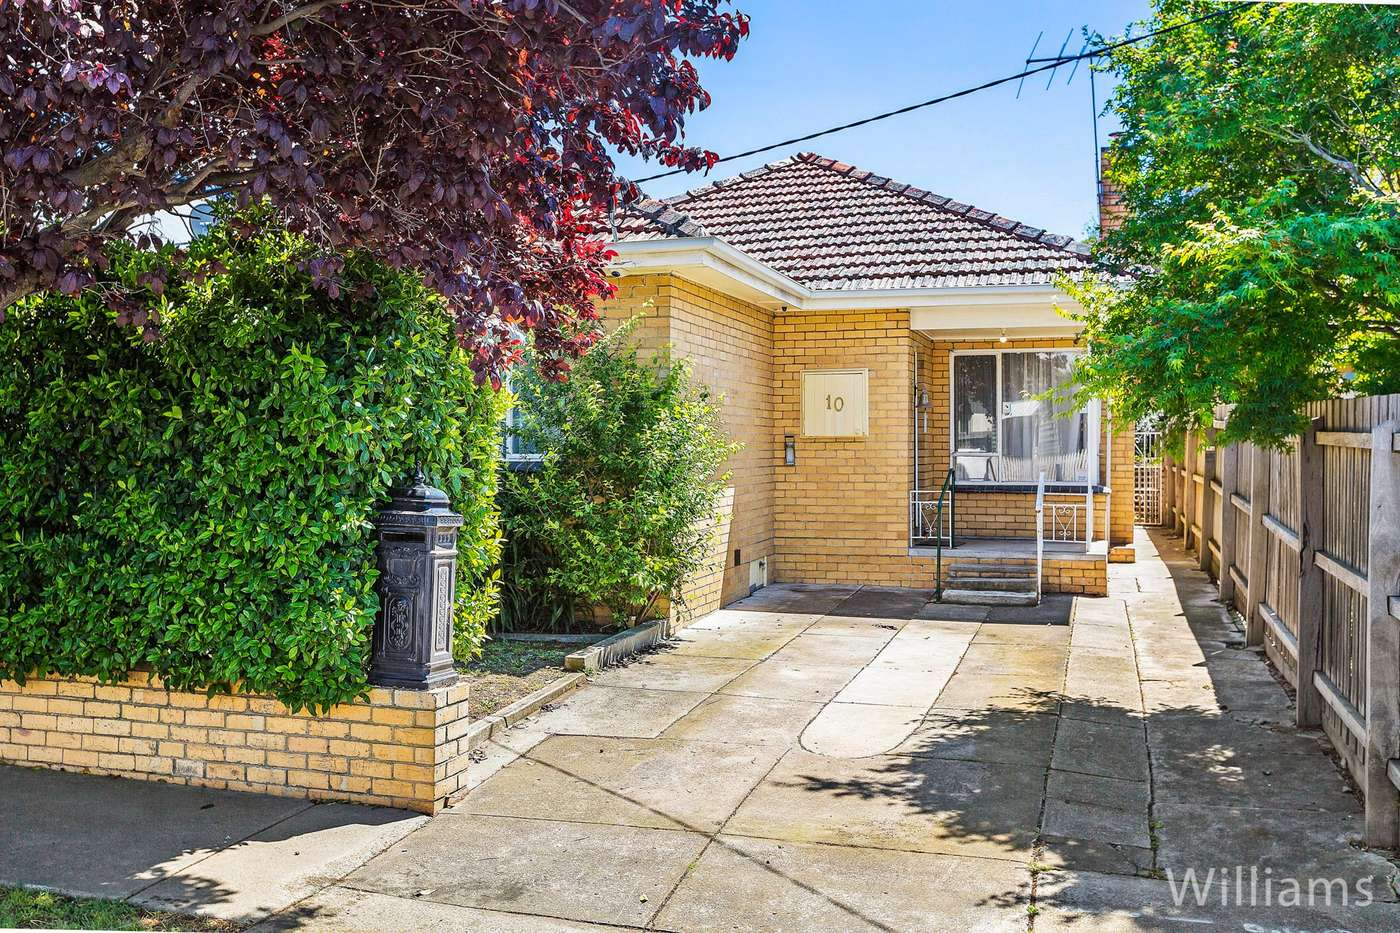 Main view of Homely house listing, 10 Wilkins Street, Newport, VIC 3015